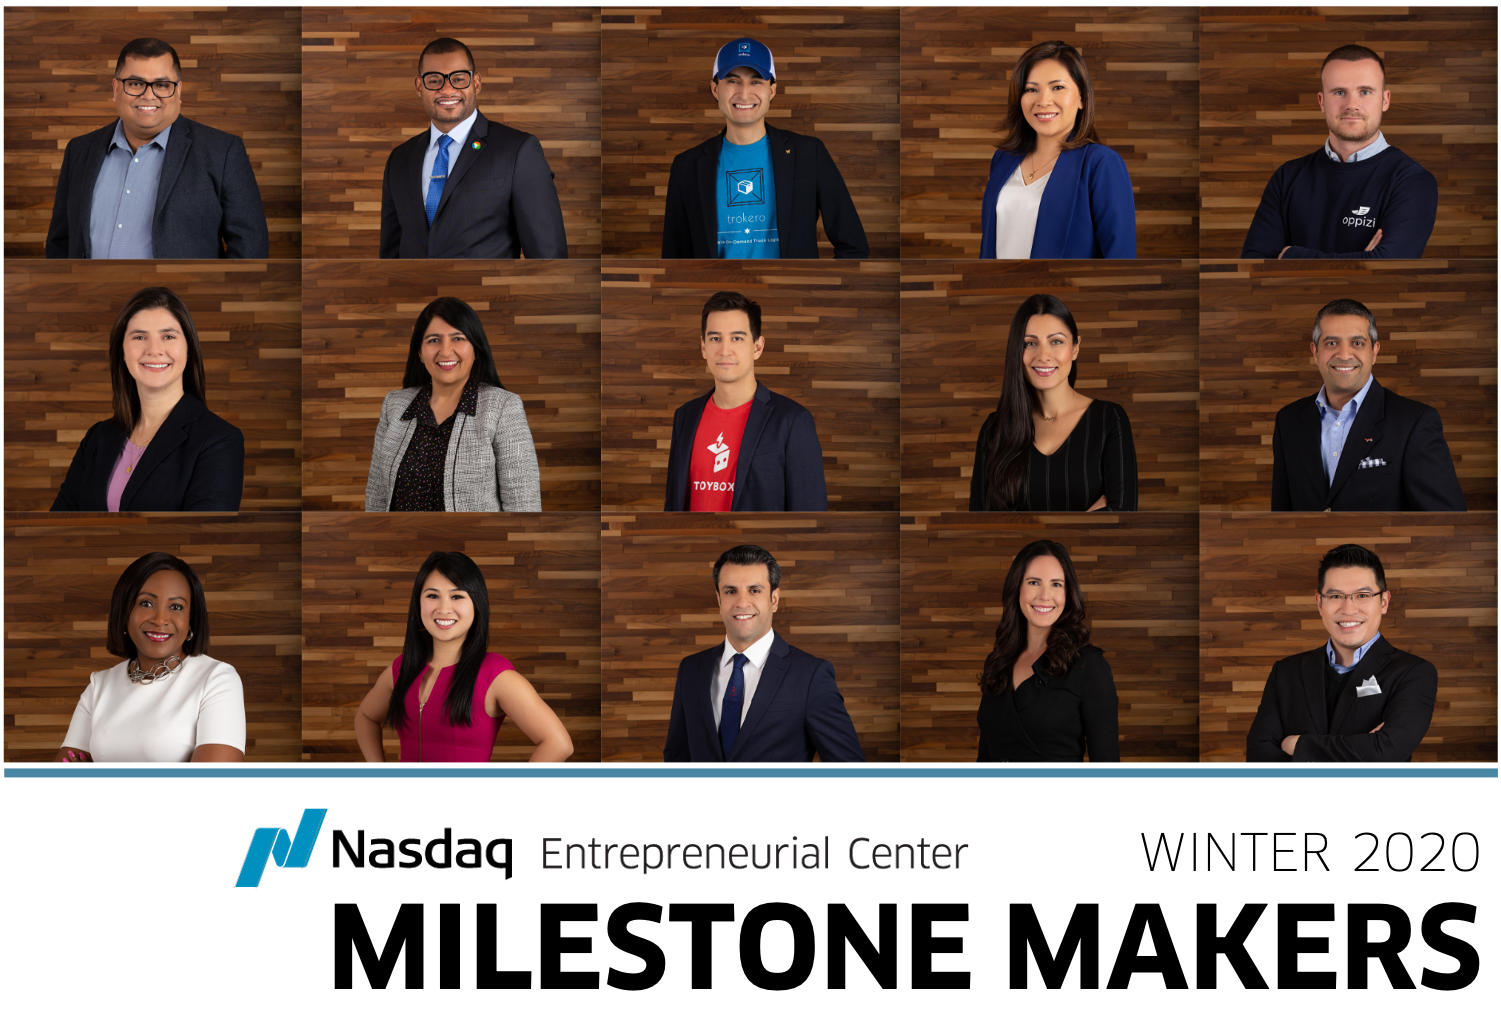 Milestone Makers Winter 2020